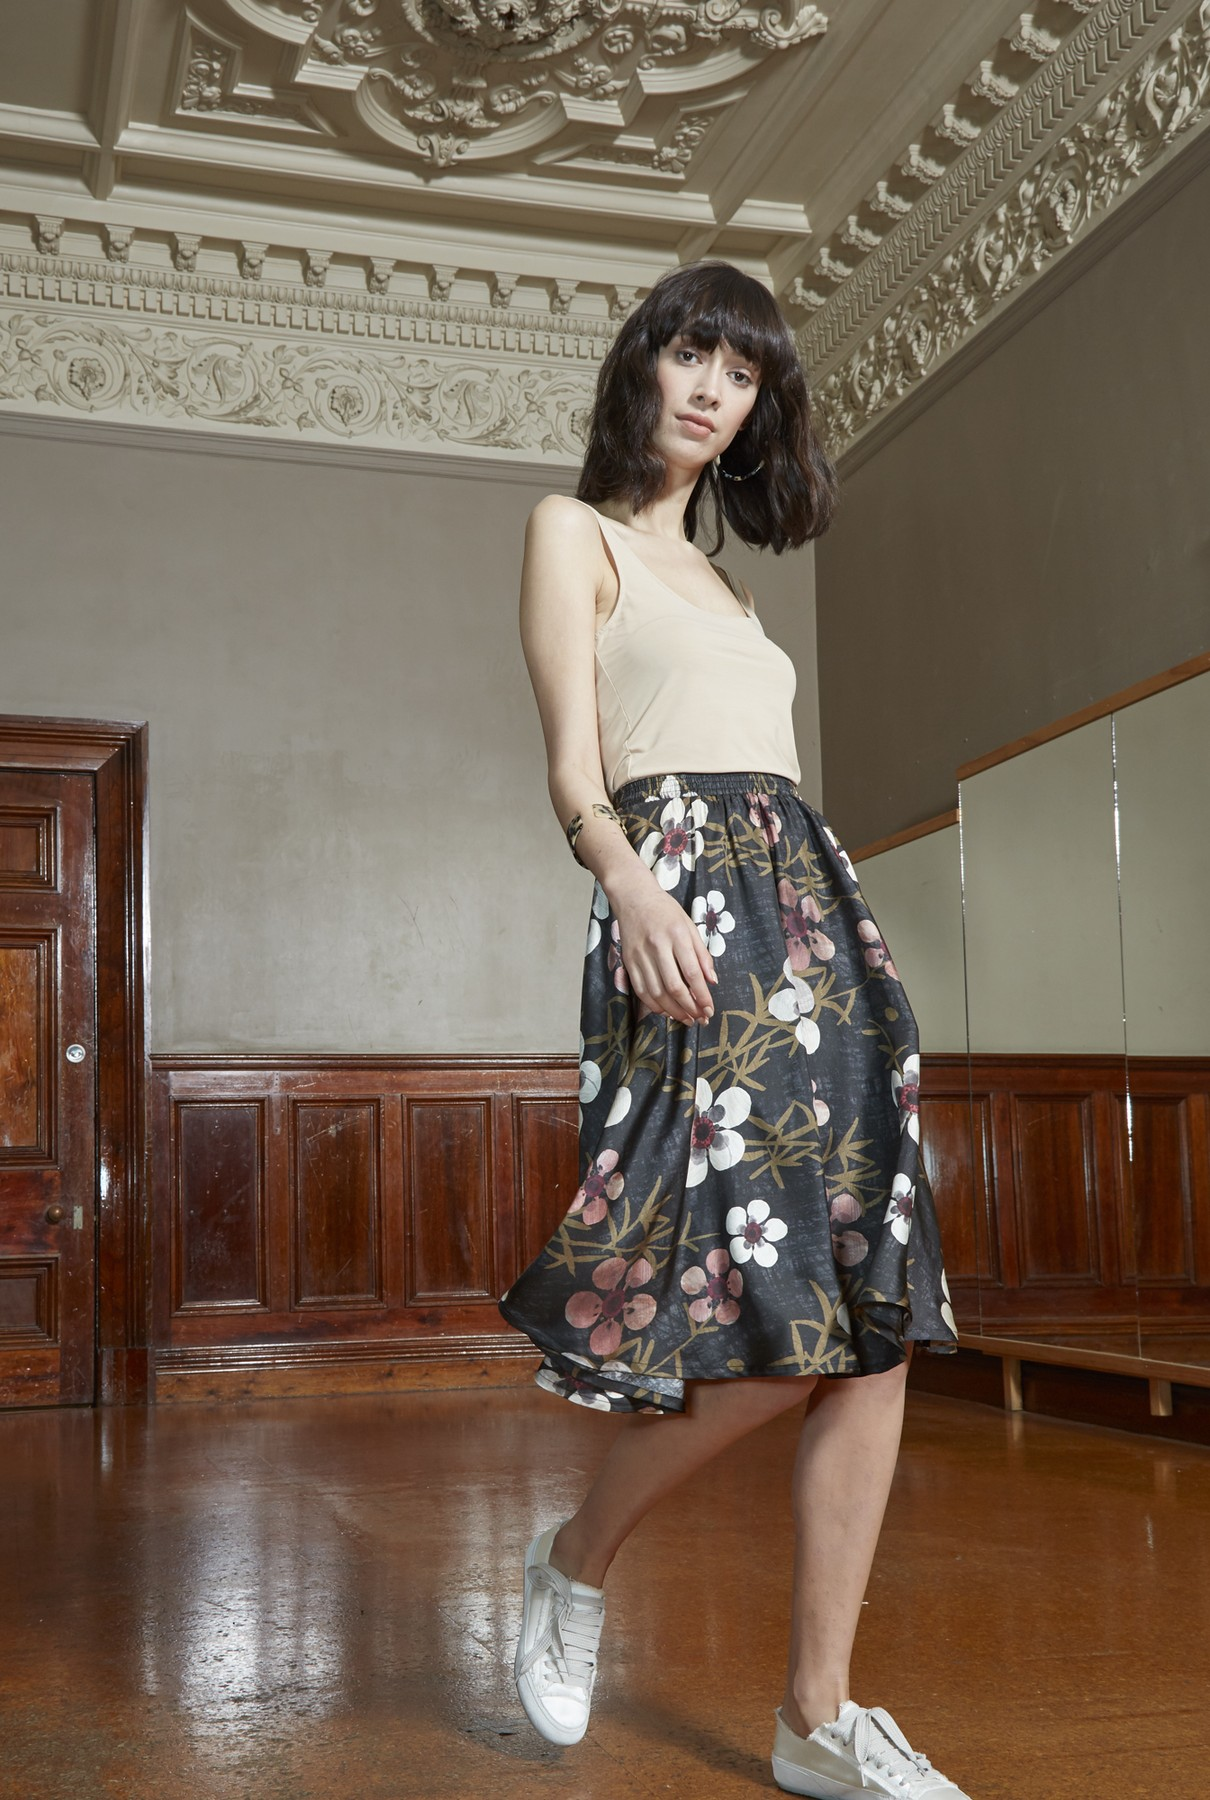 dancing skirt/manuka blossom